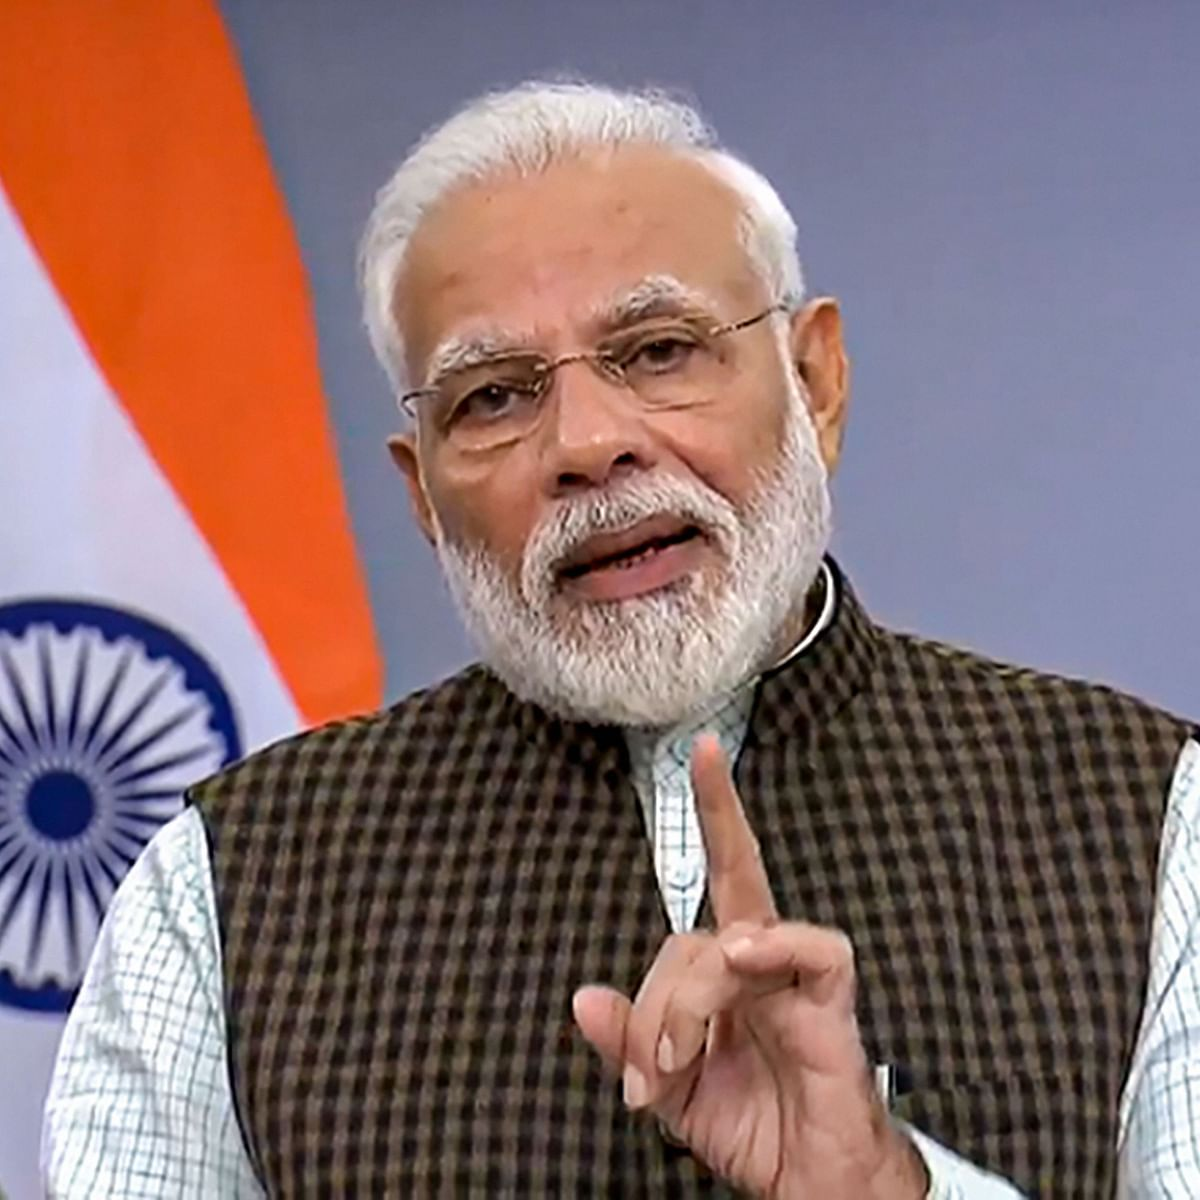 PM Modi addresses the nation on Oct 20 at 6 pm: Highlights of the speech